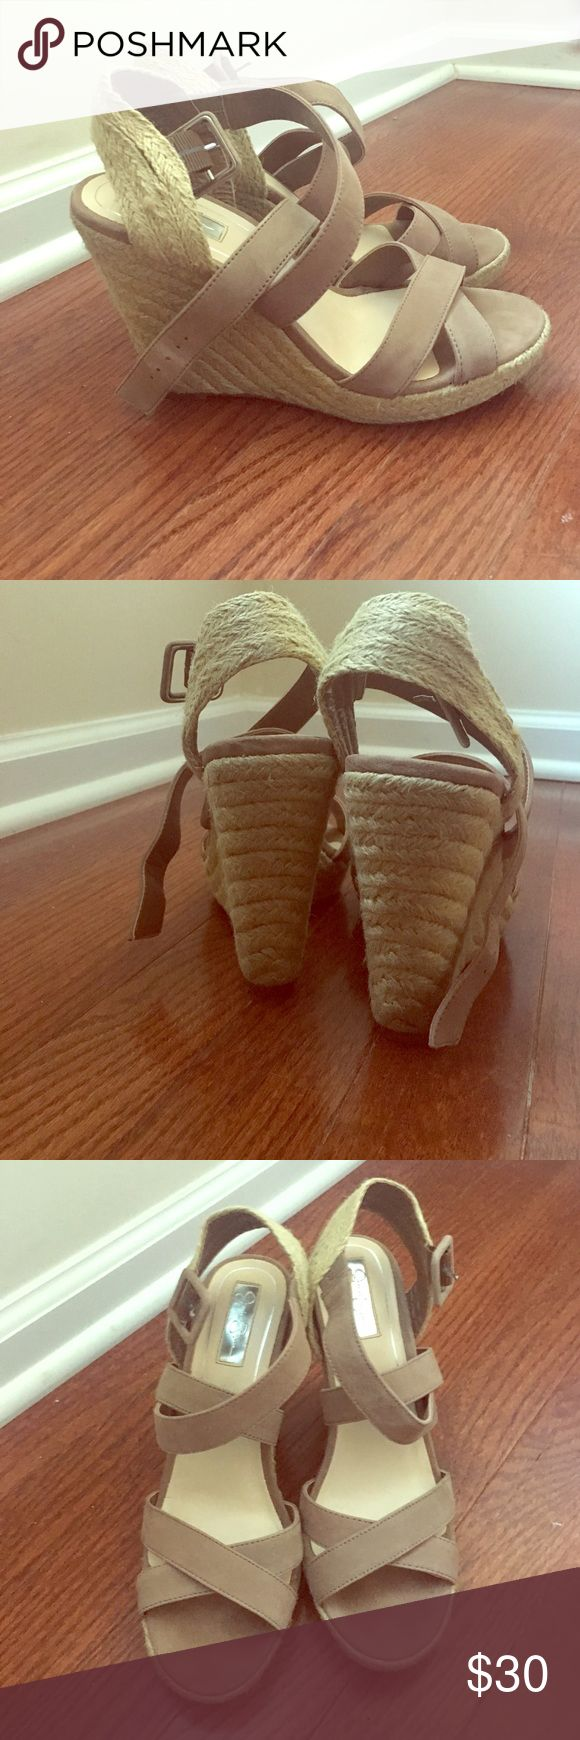 Jessica Simpson Wedges Jessica Simpson Jamey Taupe Wedges, Size 7, Worn One Time, Smoke Free Home. Has taupe colored straps across the top of the foot. Wedges are woven straw. Great for summer time outfits! Do not have the box anymore. Jessica Simpson Shoes Wedges